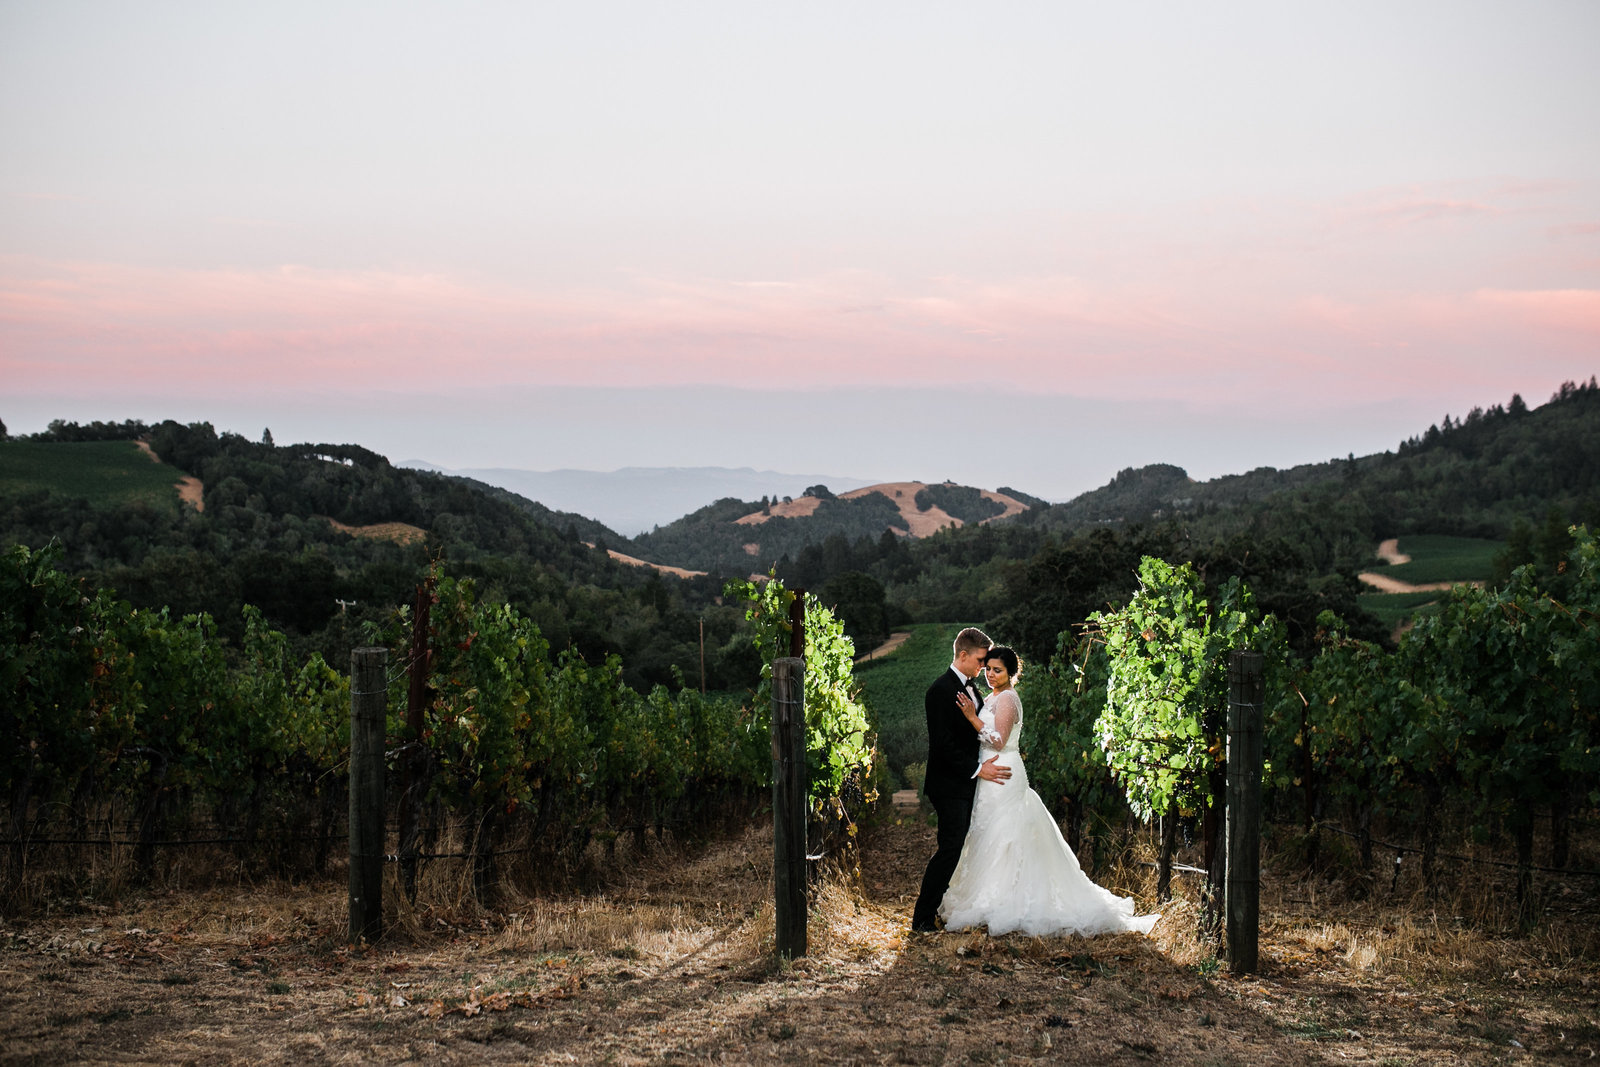 Ryan Greenleaf_Northern California Wedding Photographer_077Website_2017_Wedding50